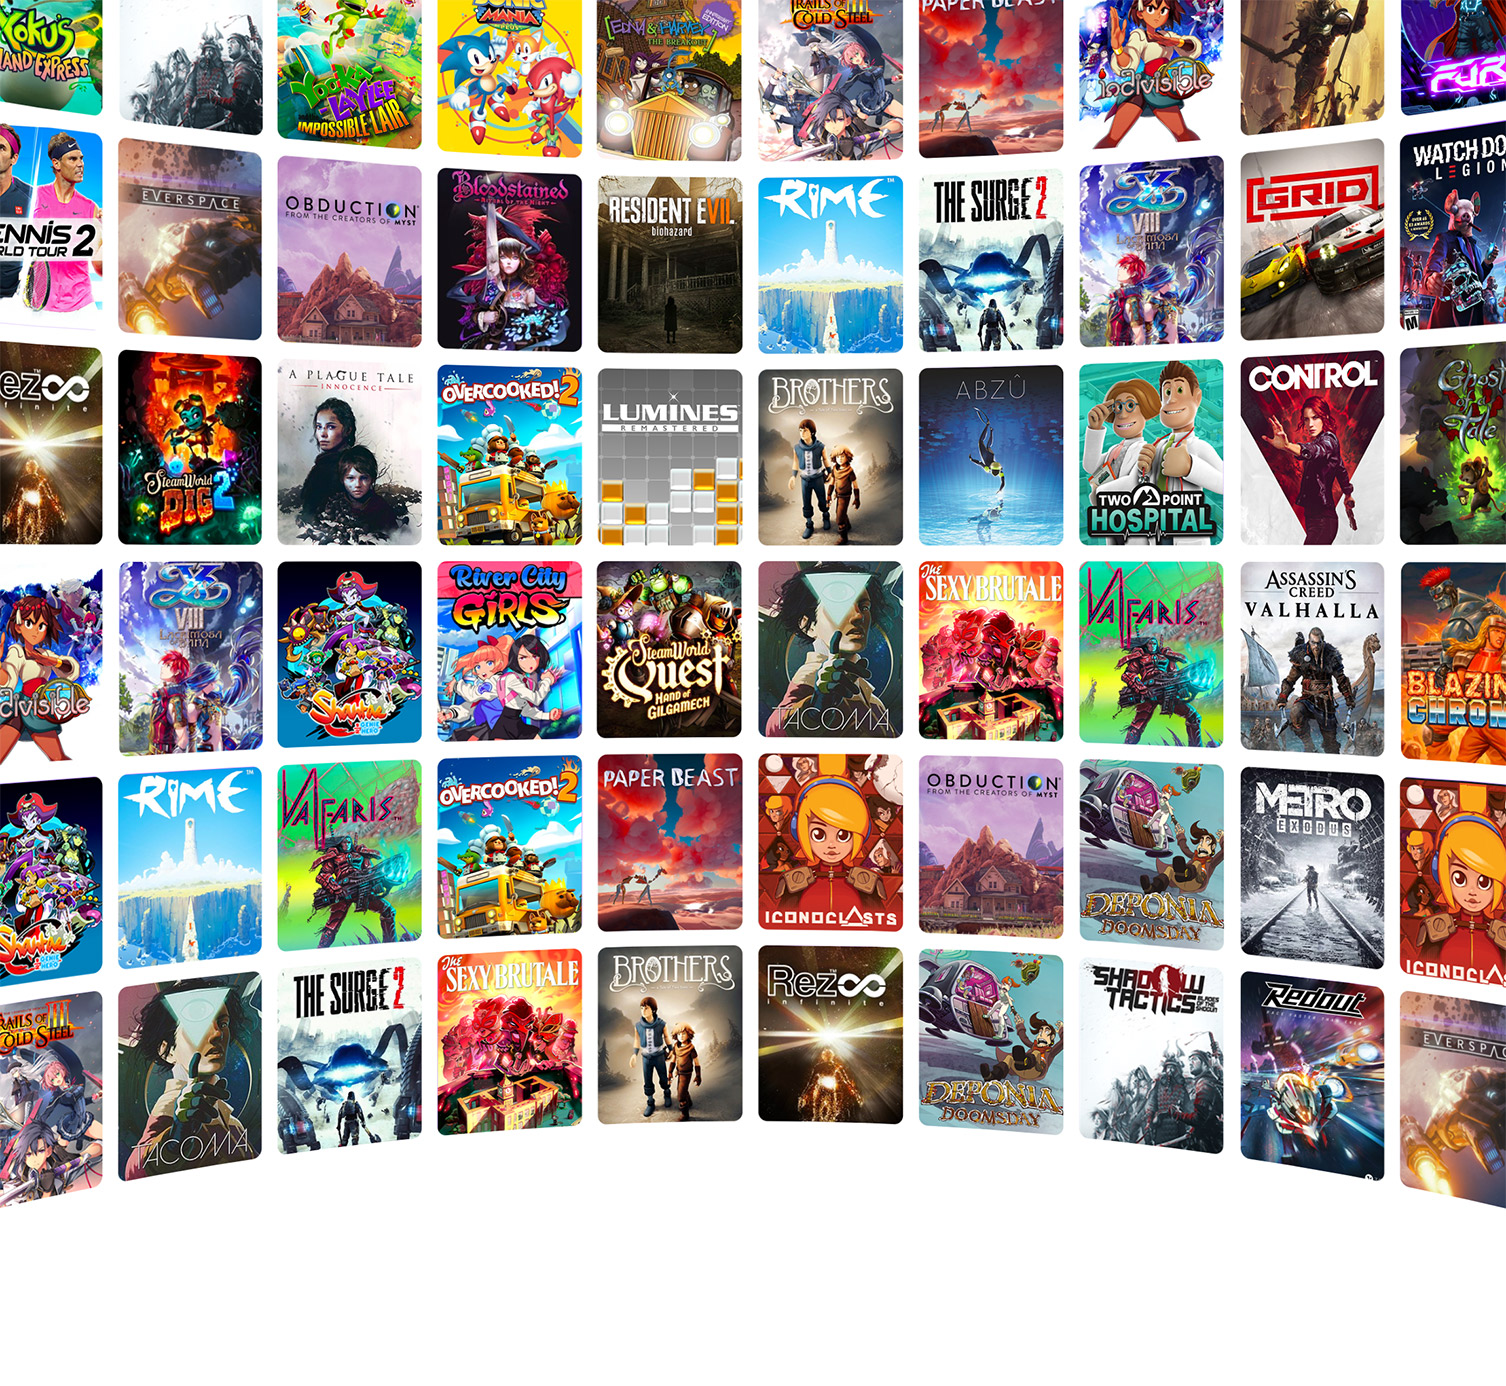 A wall of games that are on Luna, like Control and Assassins Creed: Valhalla